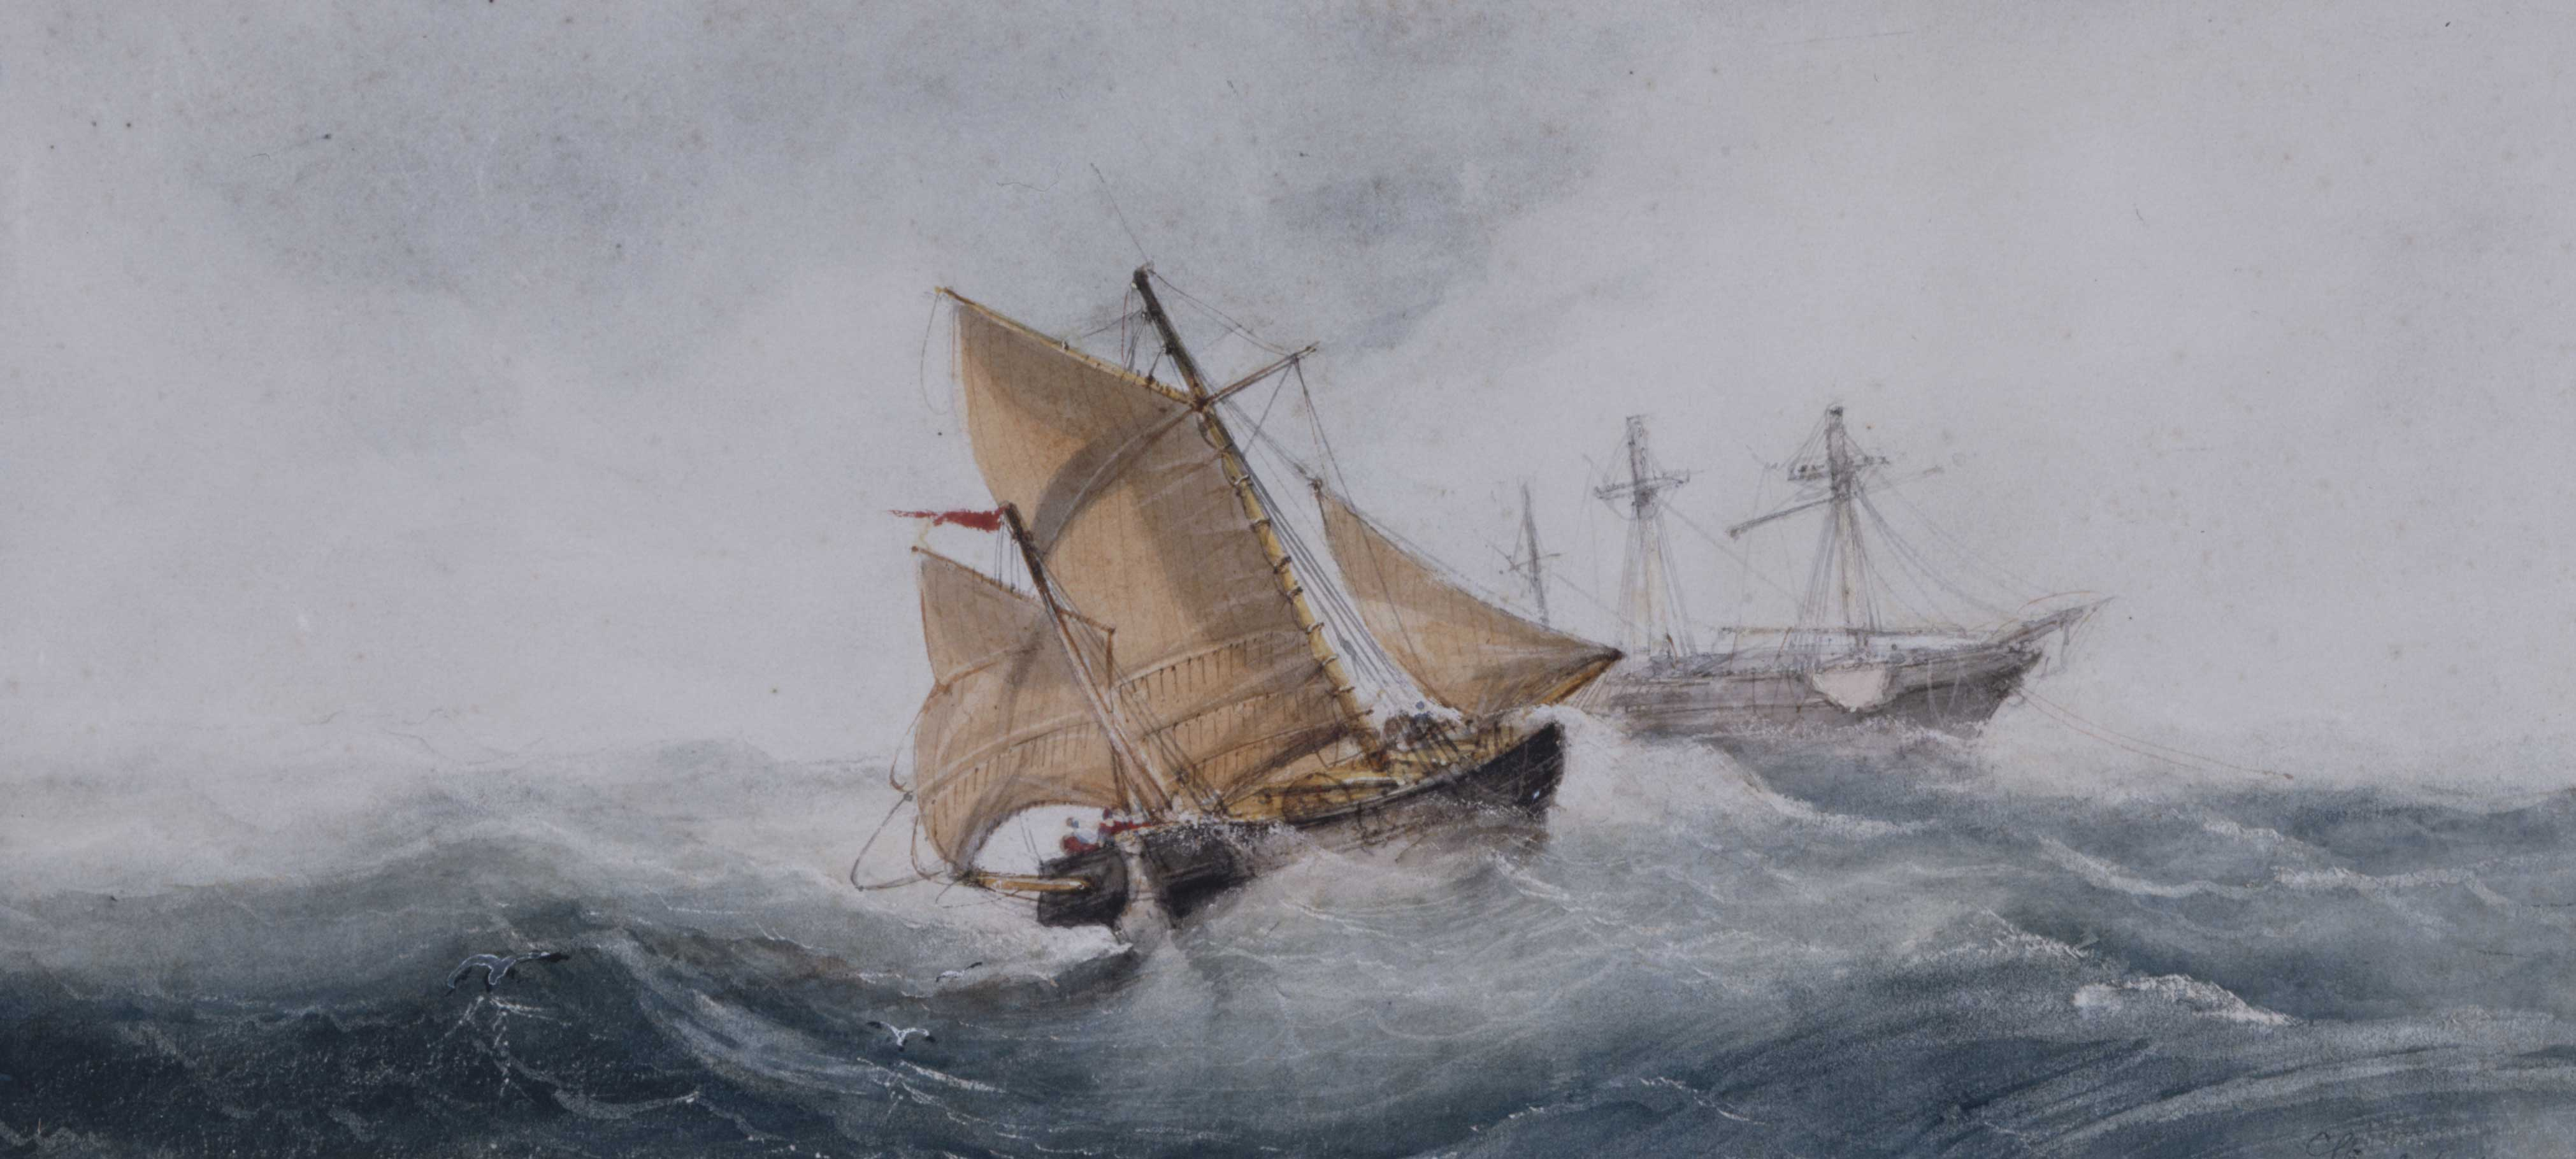 Approaching the Wreck